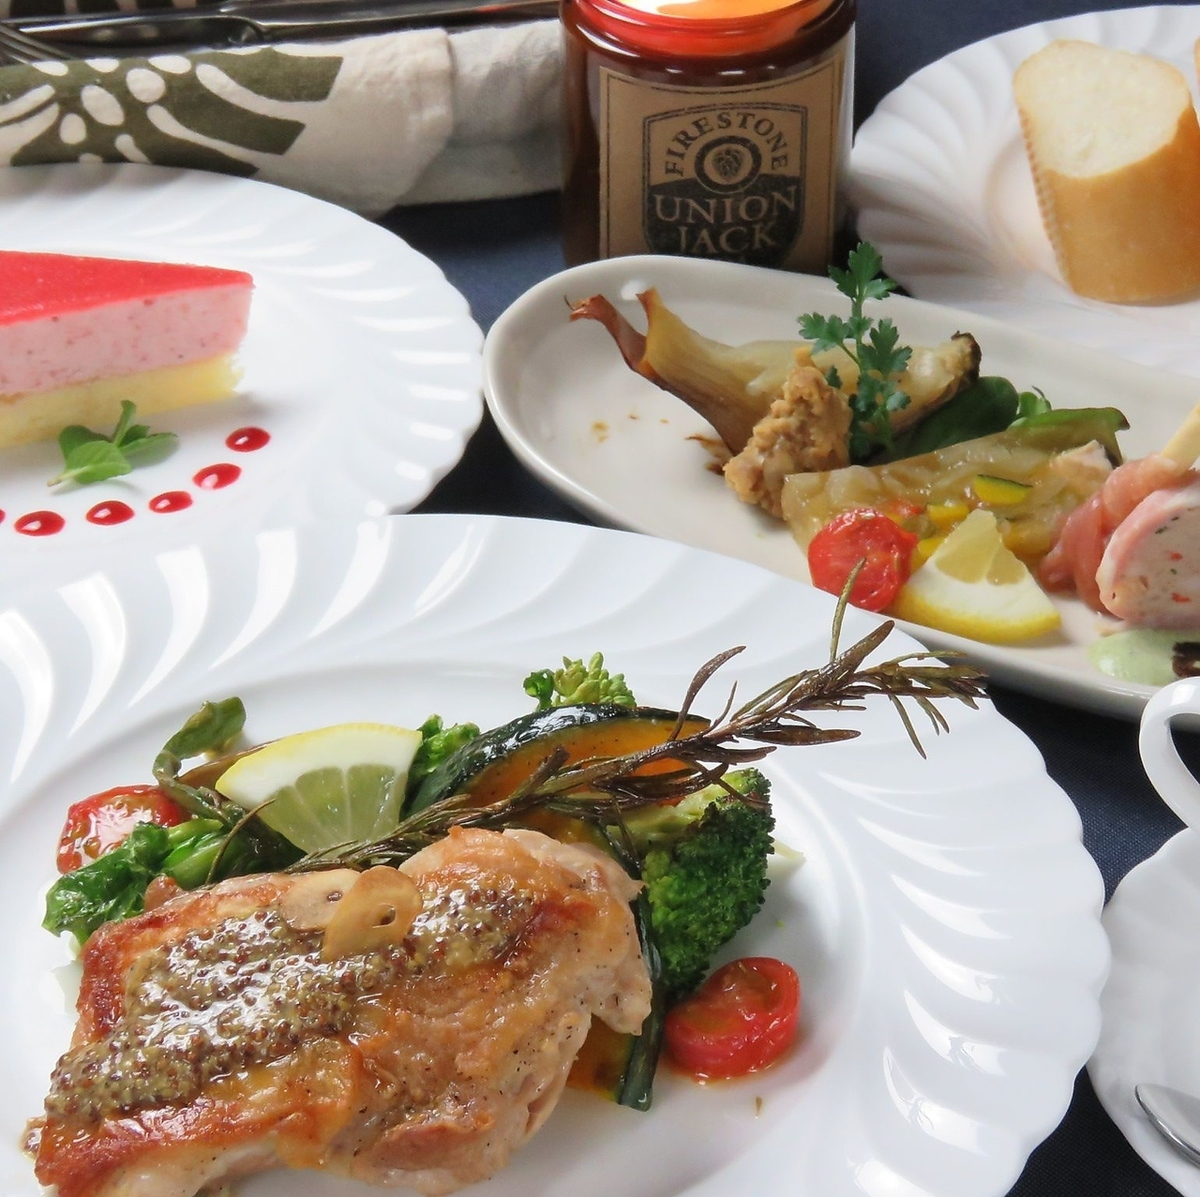 One day's lunch set 2